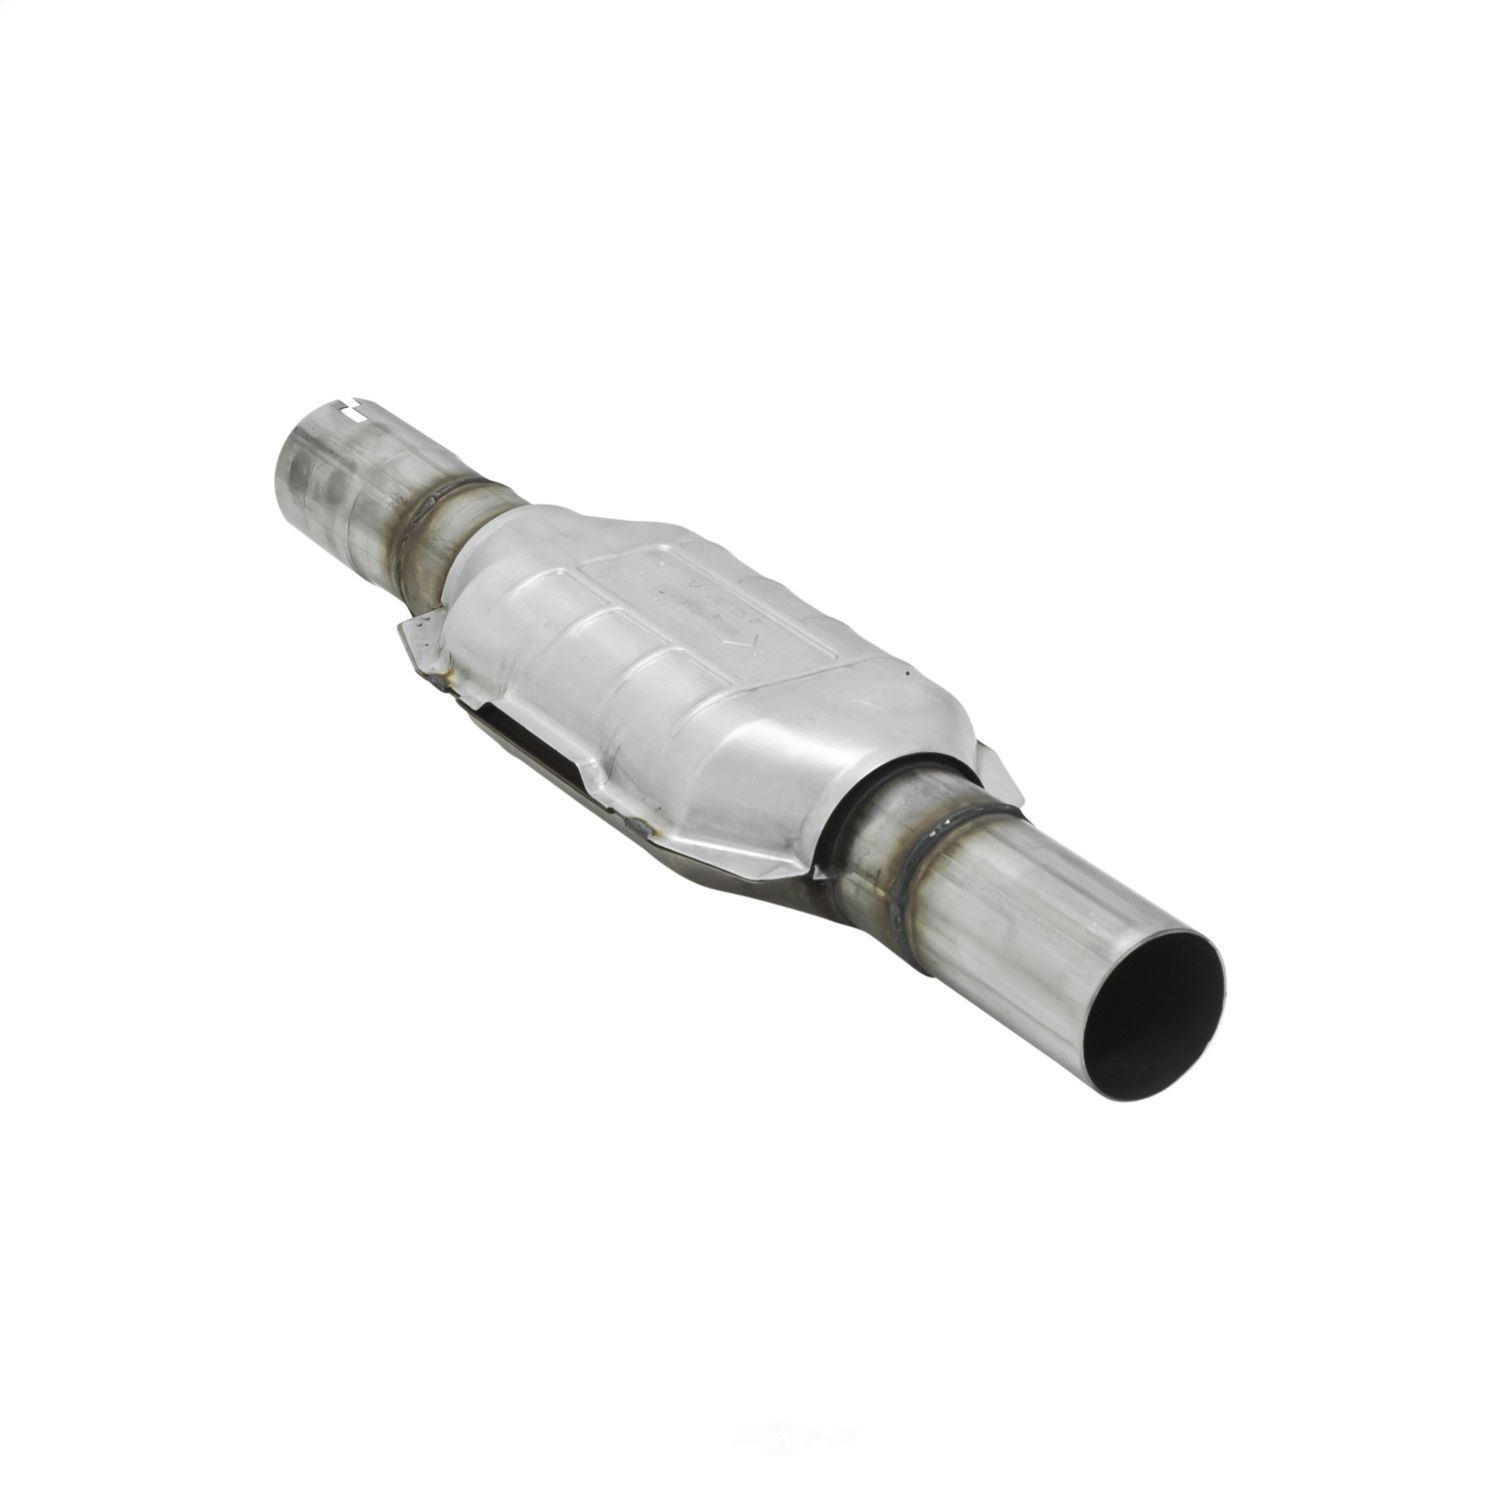 FLOWMASTER - Direct Fit Catalytic Converter - FLO 2010025